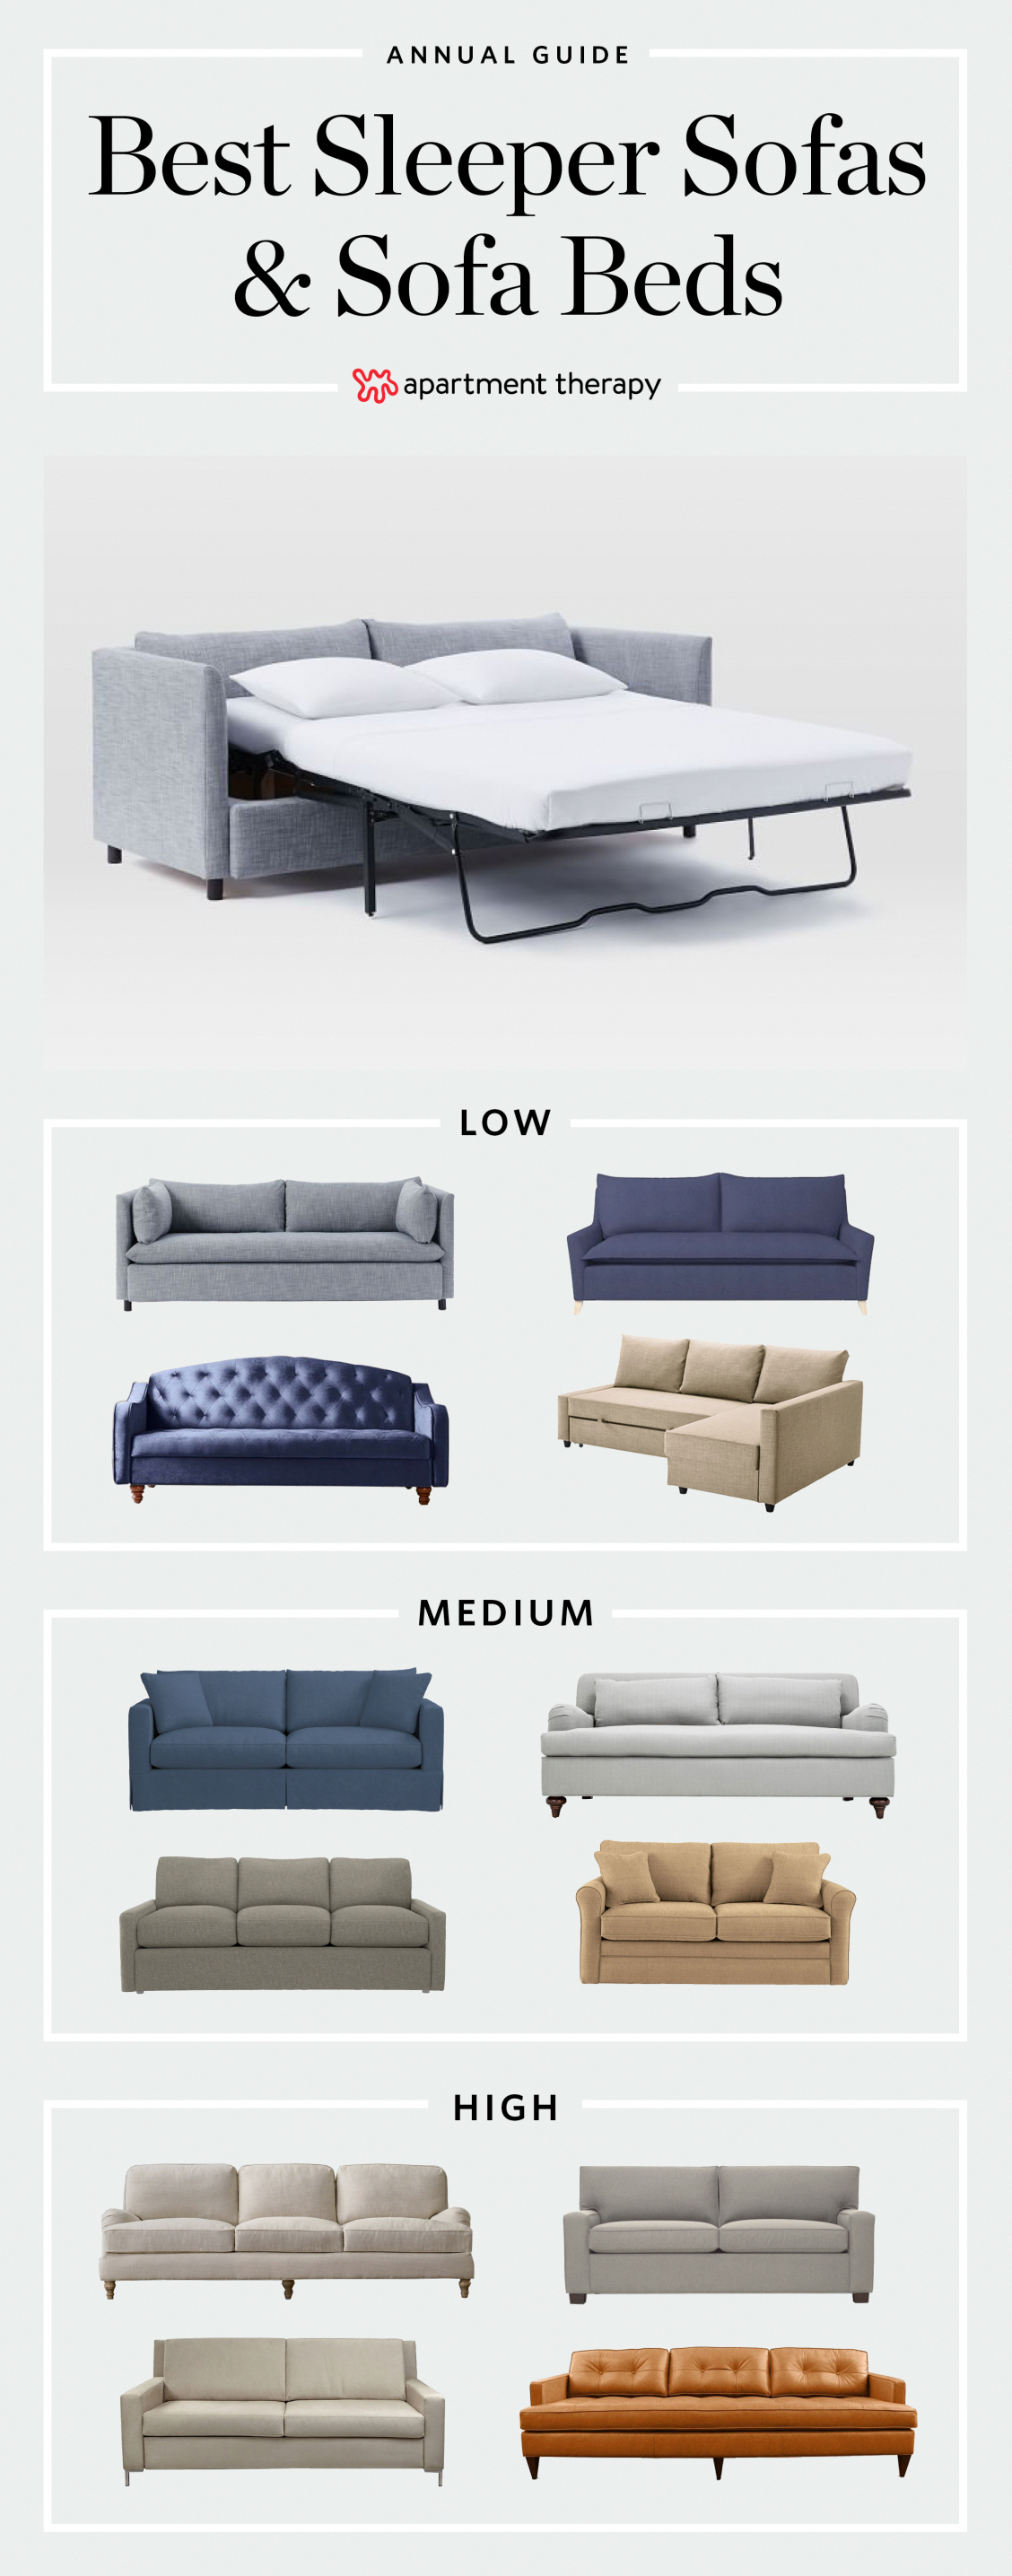 The Top 15 Best Sleeper Sofas & Sofa Beds | the technology around sleeper sofas …